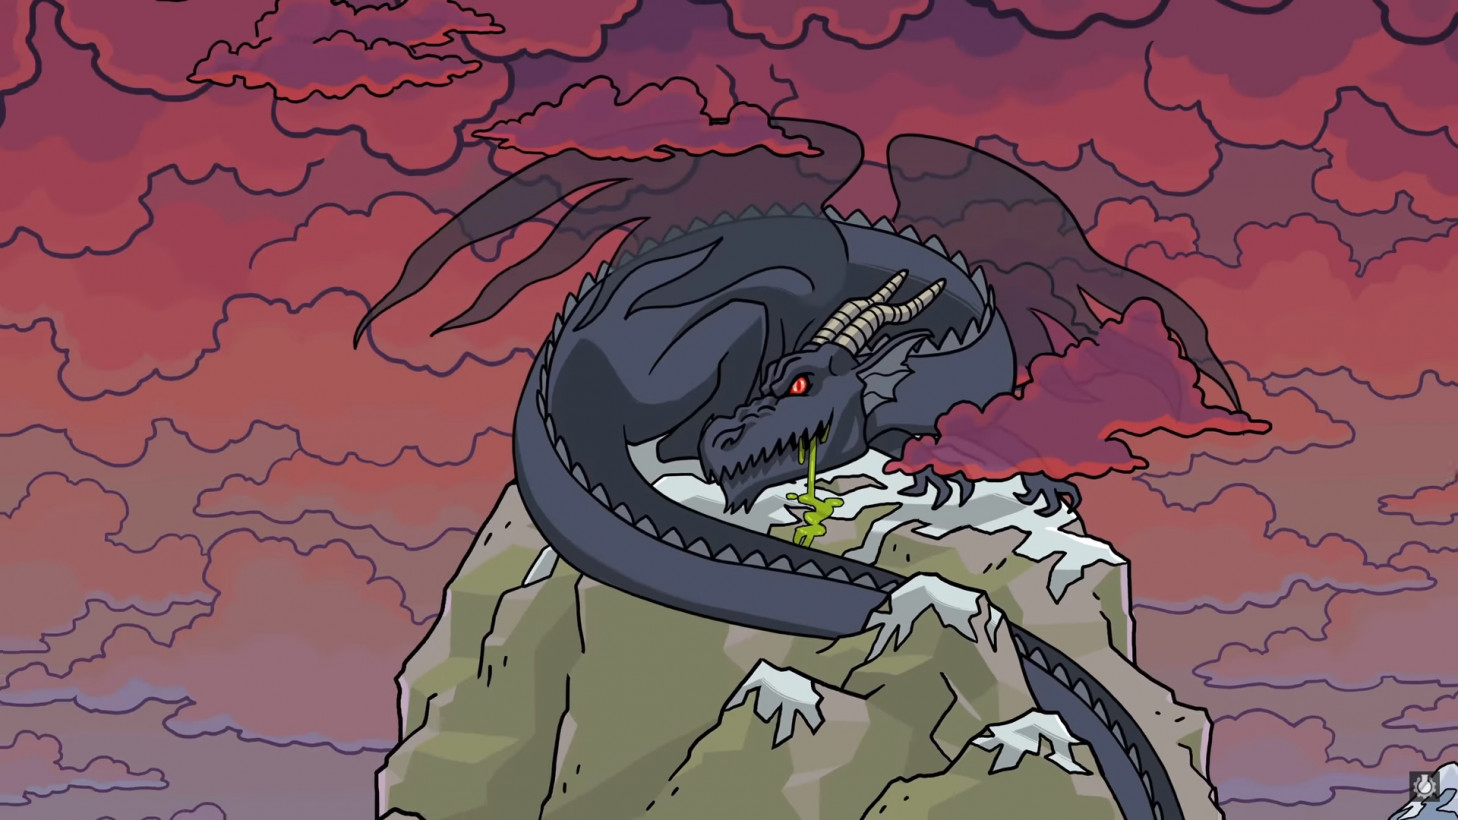 To hell with aging: Watch this YouTube video about a dragon